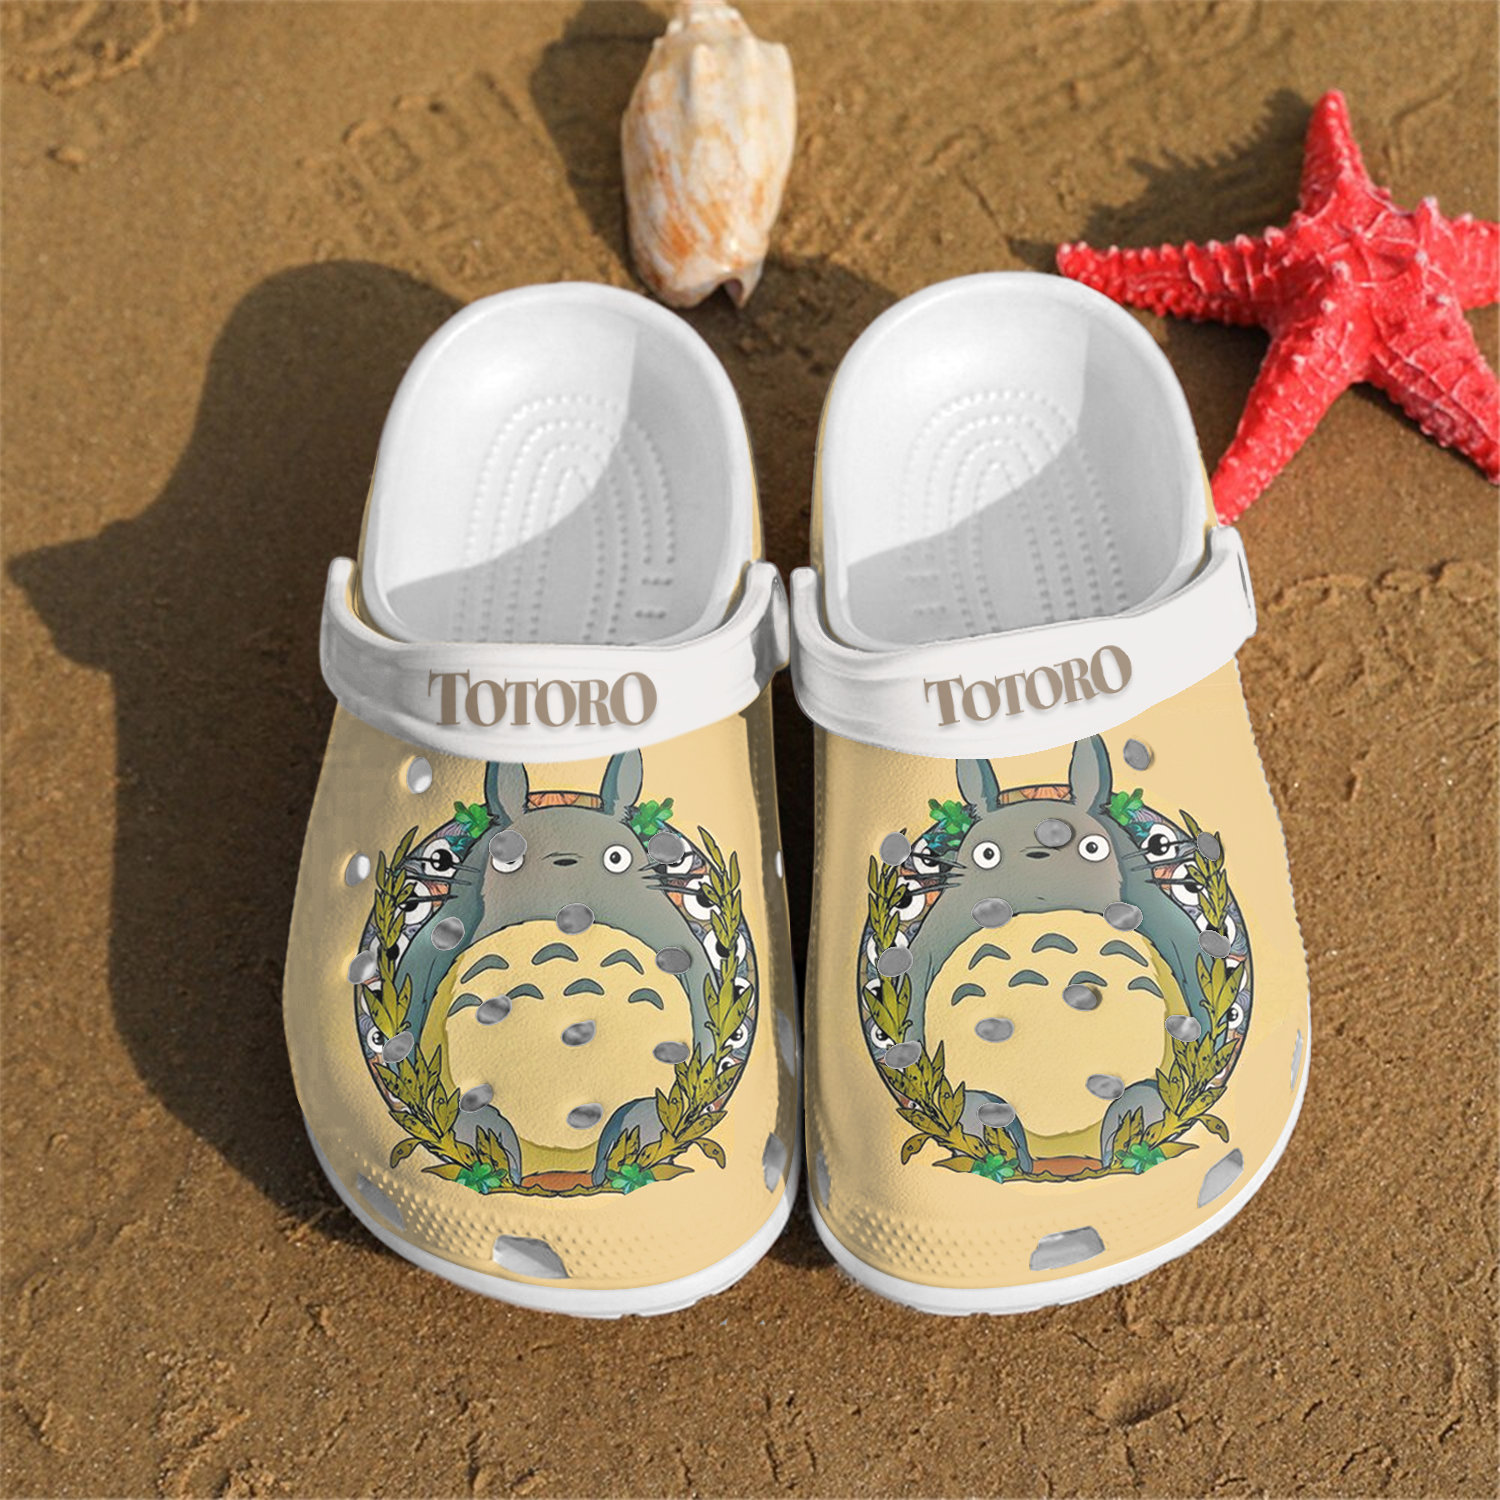 Personalised Totoro Crocs Clog Shoes